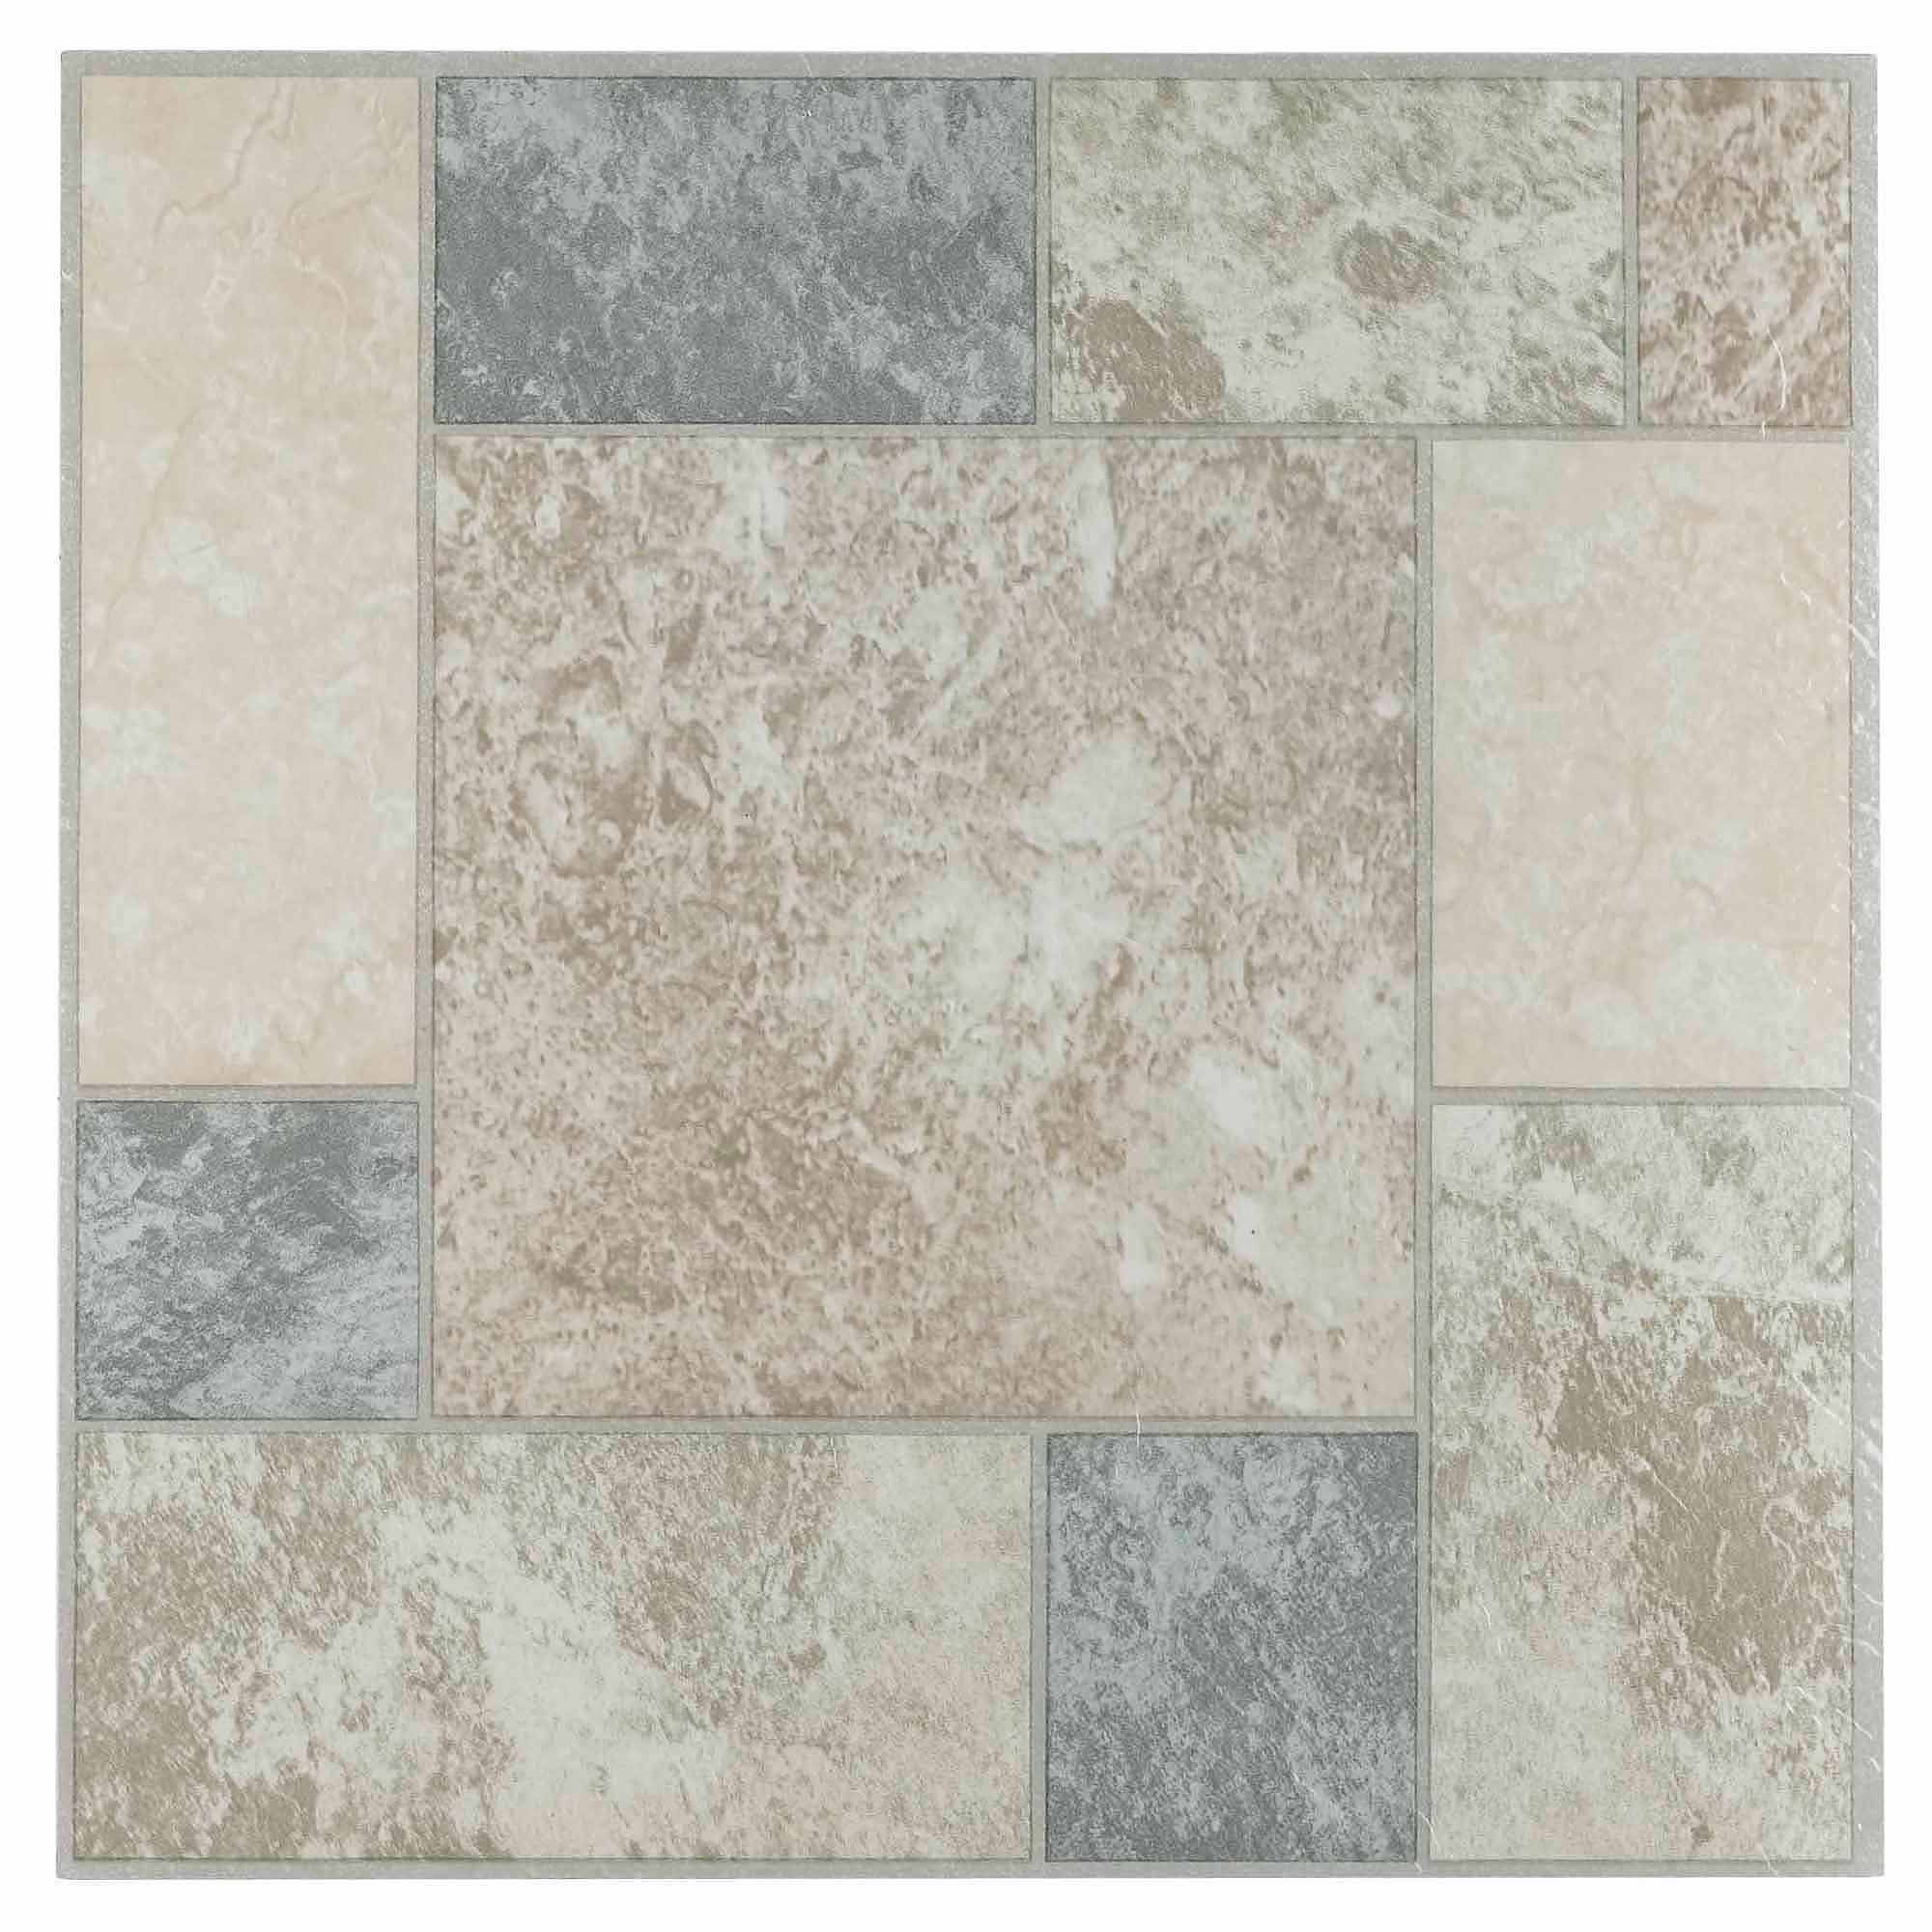 Vinyl flooring walmart nexus marble blocks 12x12self adhesive vinyl floor tile 20 tiles20 sqft dailygadgetfo Gallery